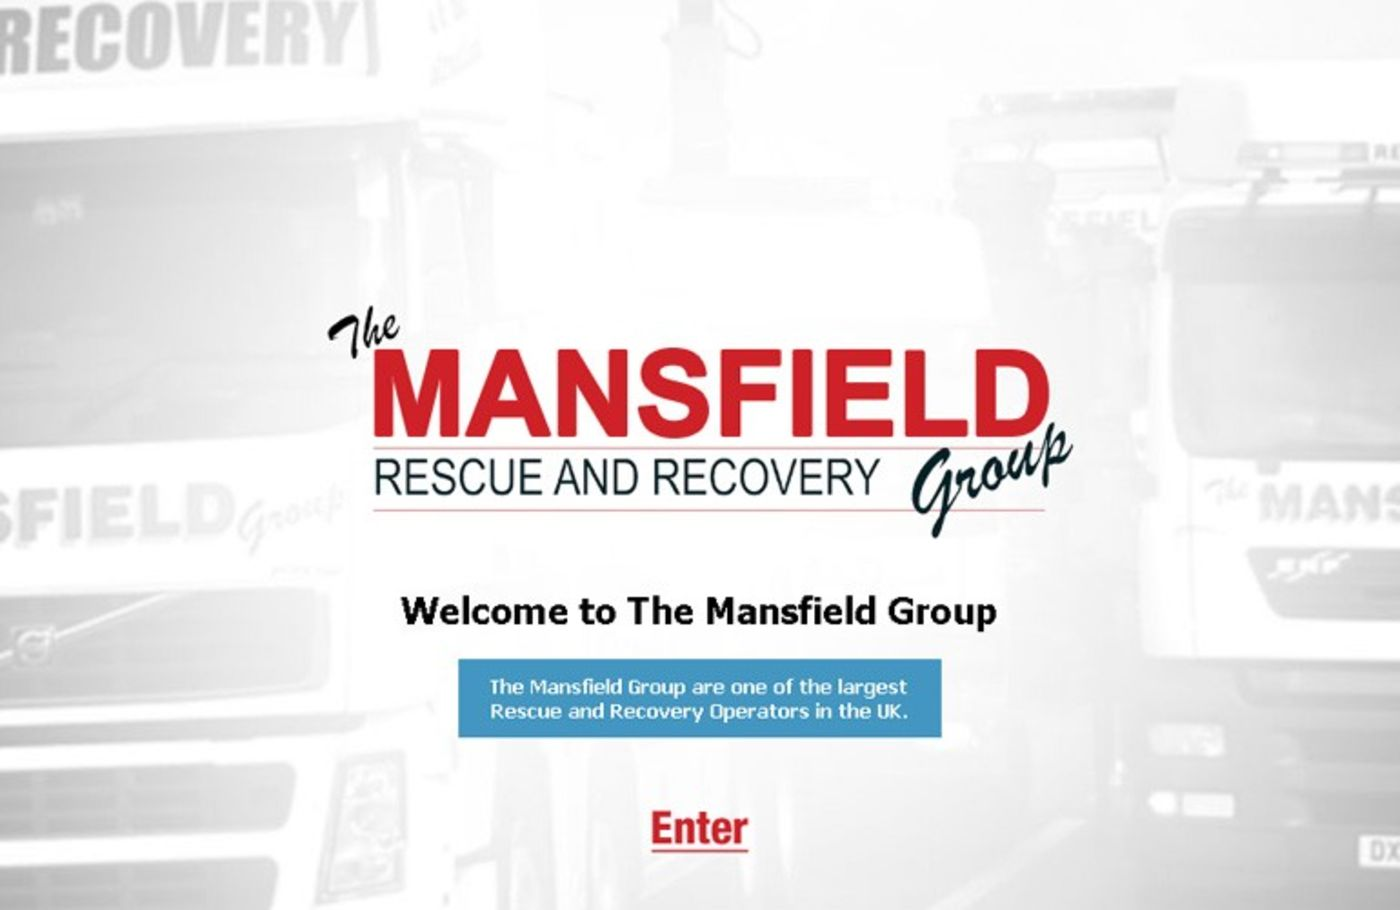 The Mansfield Group Welcome